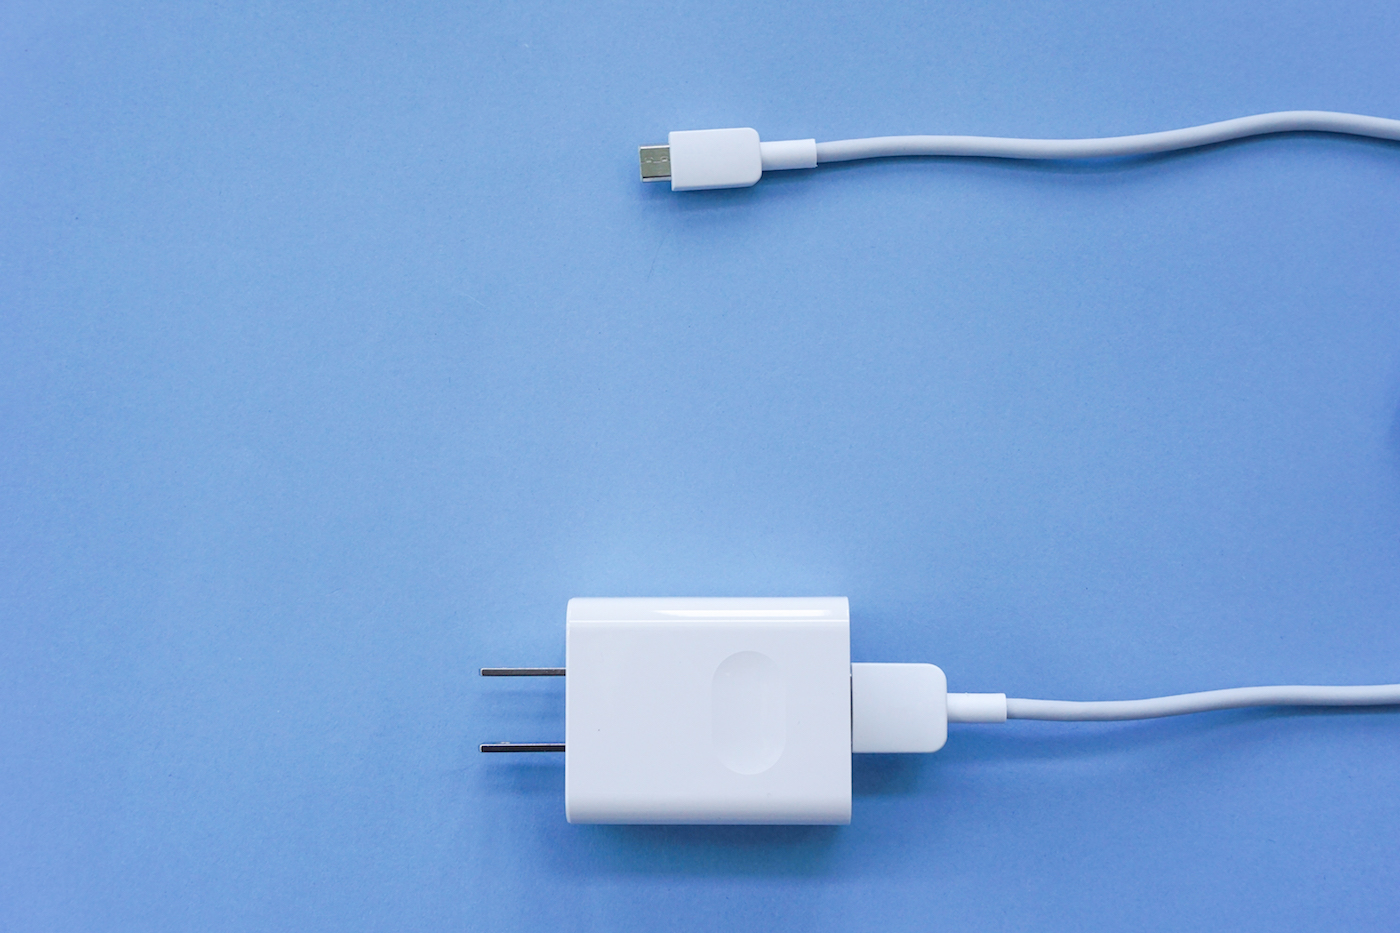 This Genius Hack Keeps Your Phone Charger From Fraying